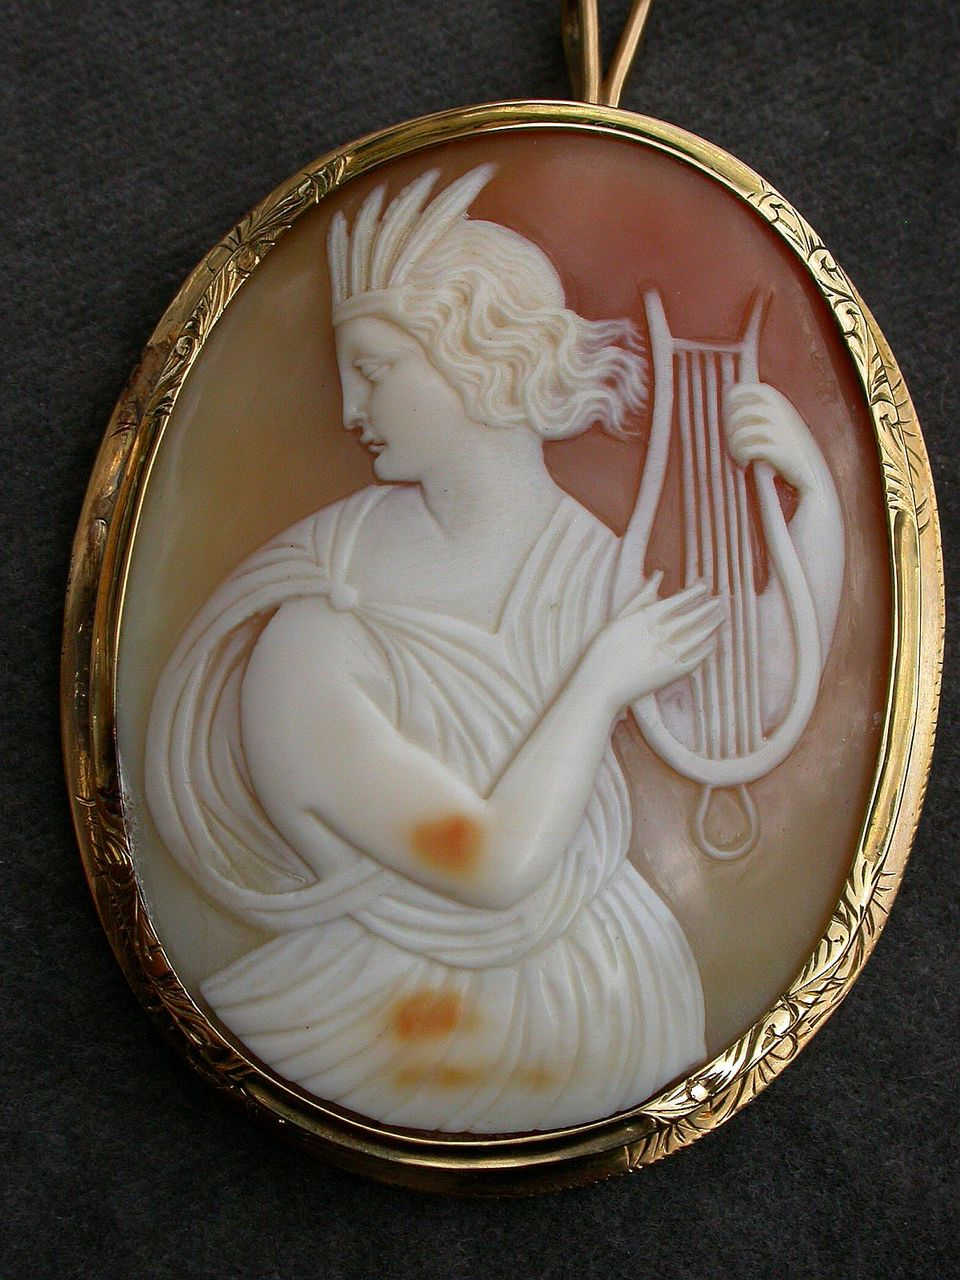 French antique 18k solid yellow gold Huge Mythological Hand-Carved Shell Cameo Pendant Brooch engraved frame in Original Box